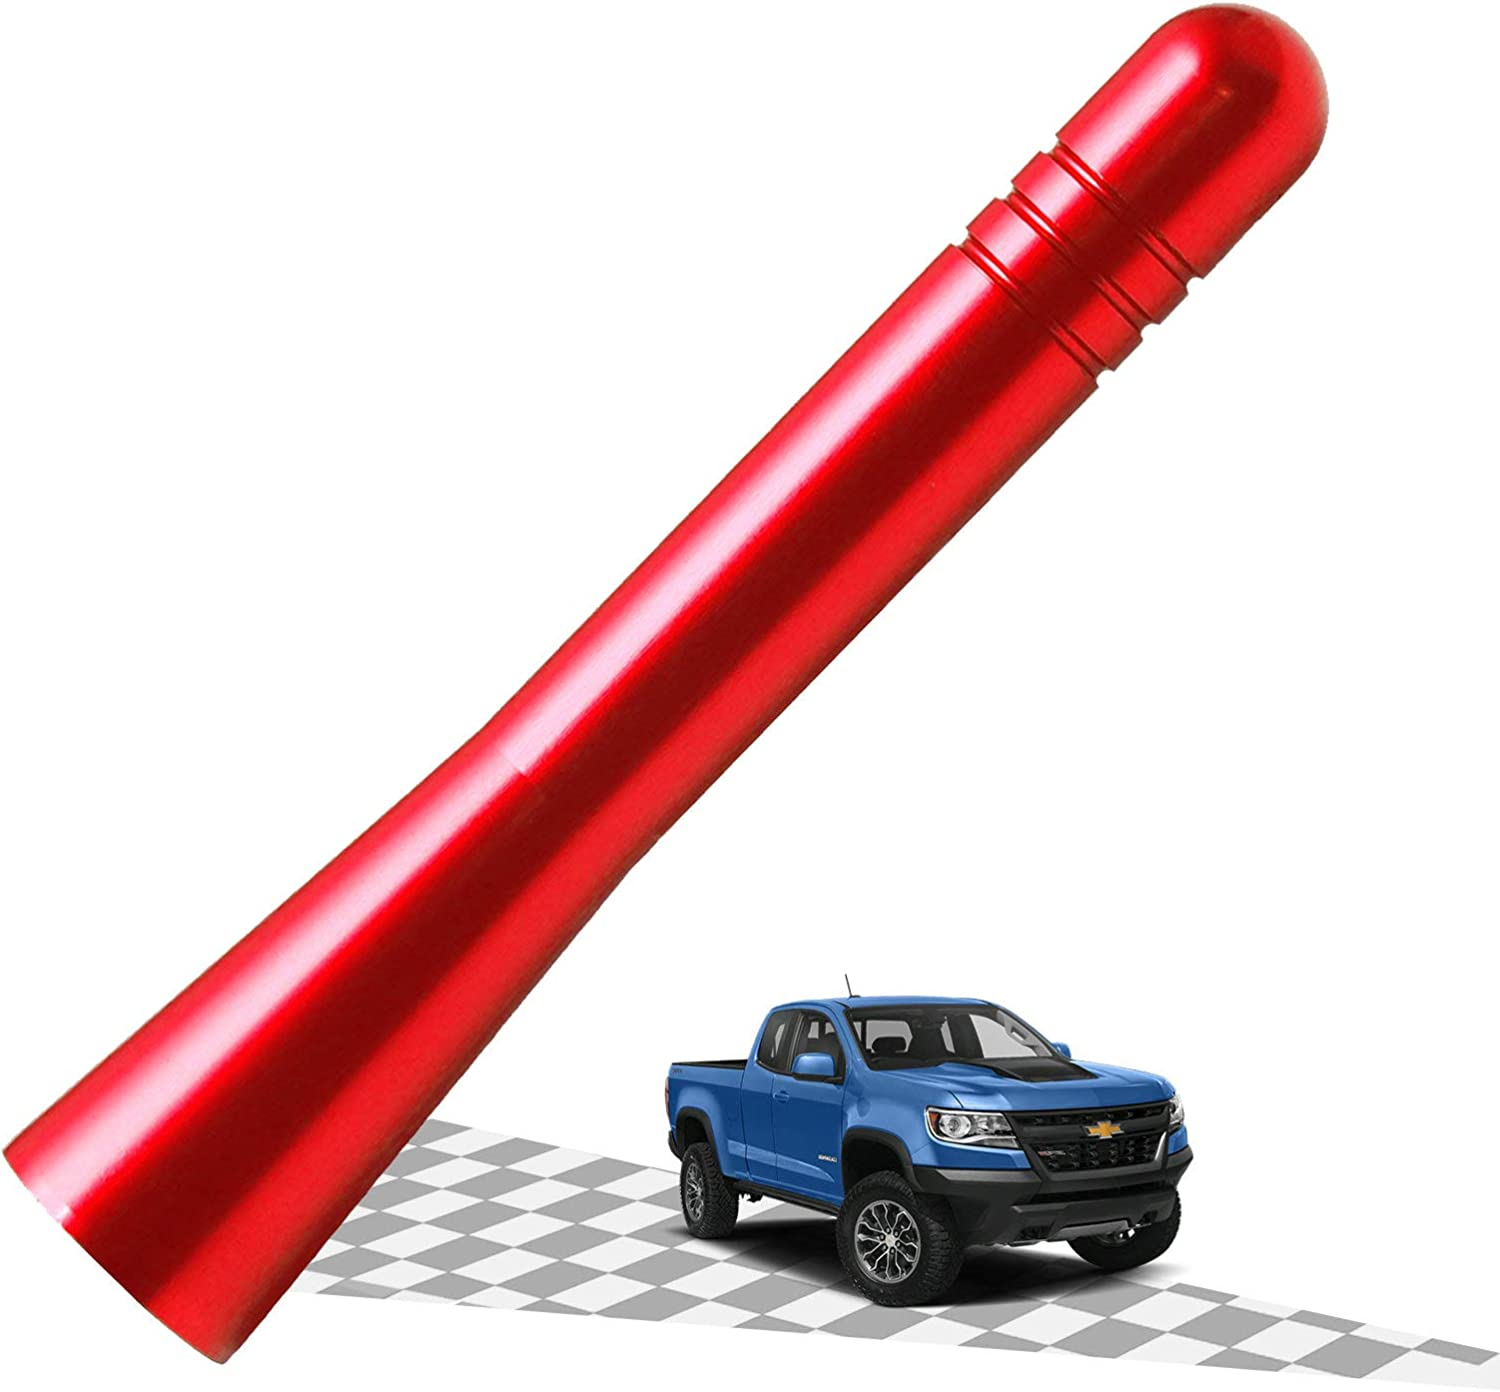 Elitezip Antenna Compatible with Chevy Colorado 2015-2018 3.2 Inches Optimized AM//FM Reception with Tough Material Vermilion Red